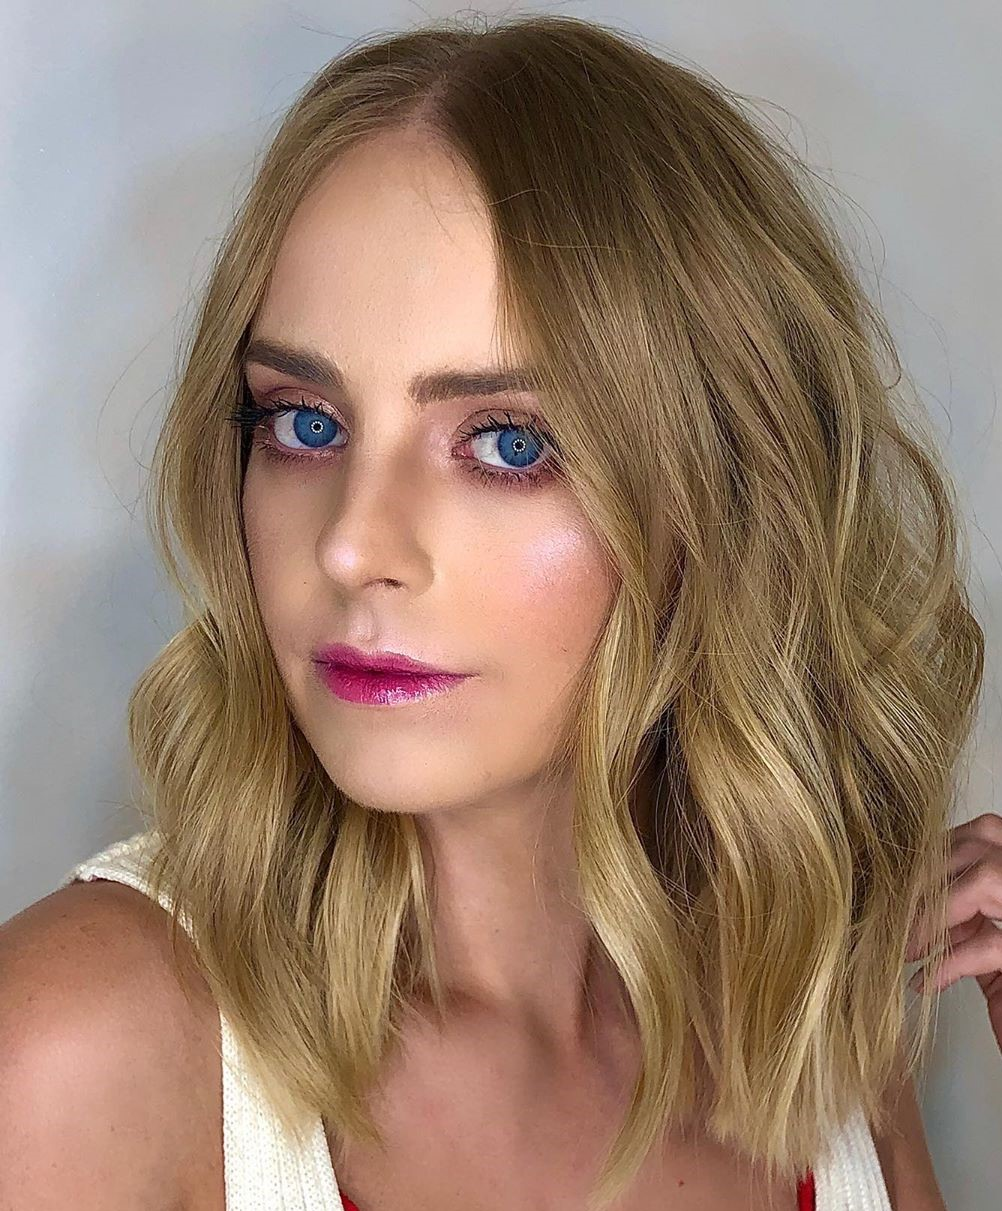 52 HQ Pictures Dirty Blonde Hair With Blue Eyes / How To ...